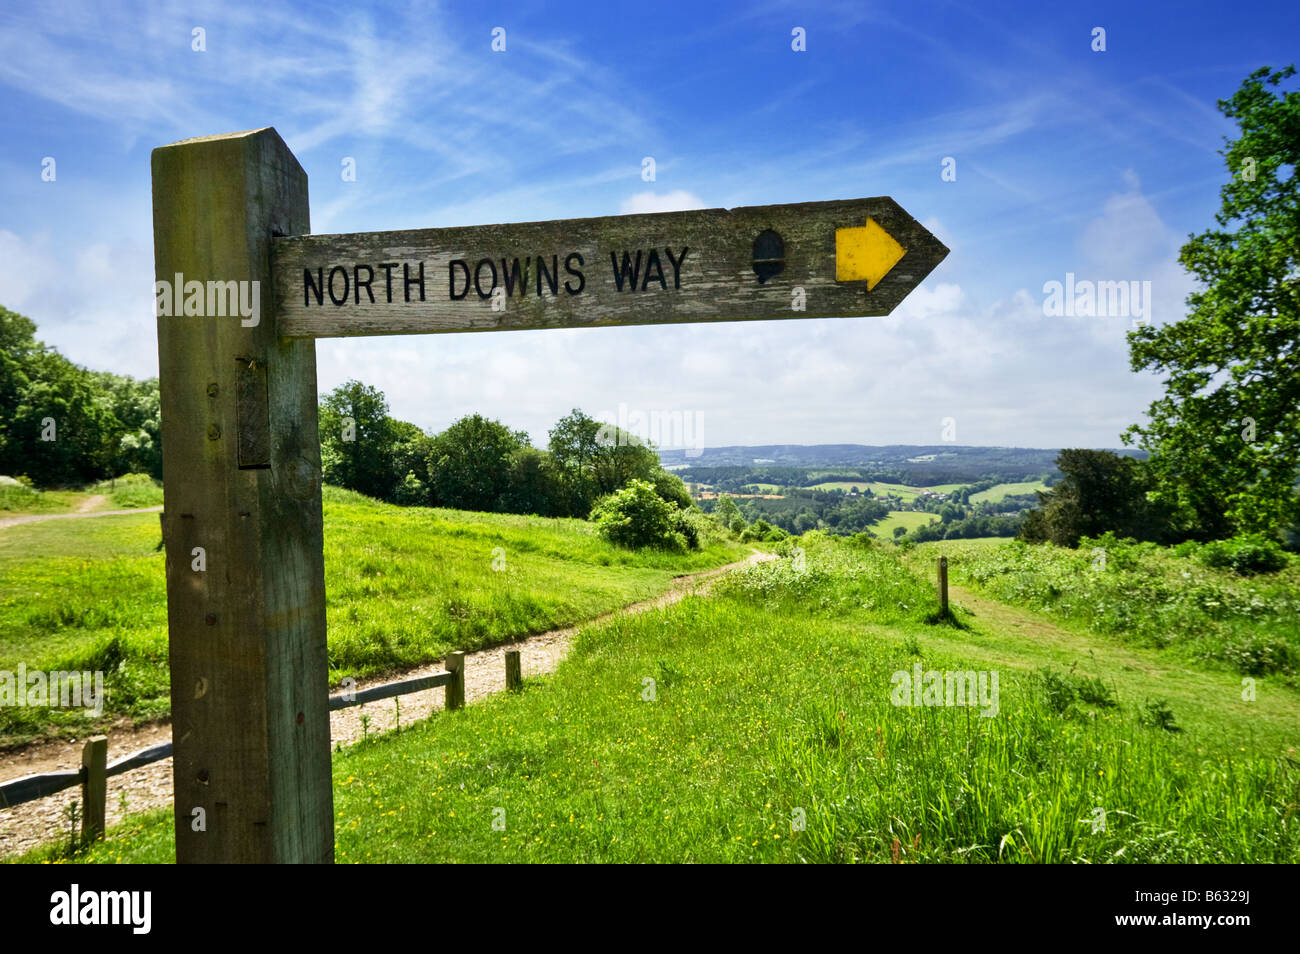 North Downs Way footpath direction signpost sign, Newlands Corner, Surrey hills, England, UK - Stock Image